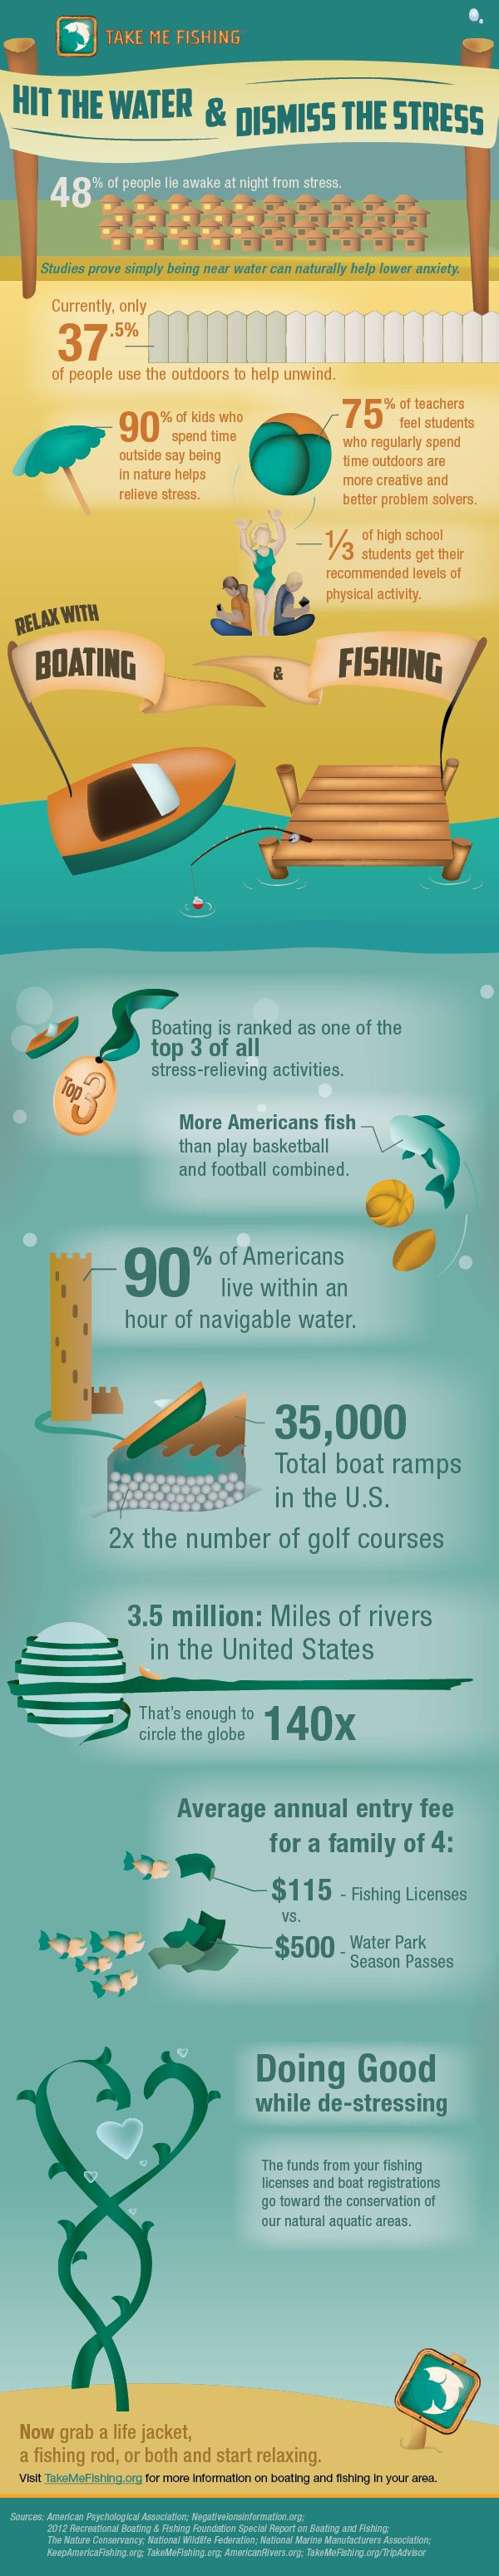 Health Benefits of Fishing and Boating